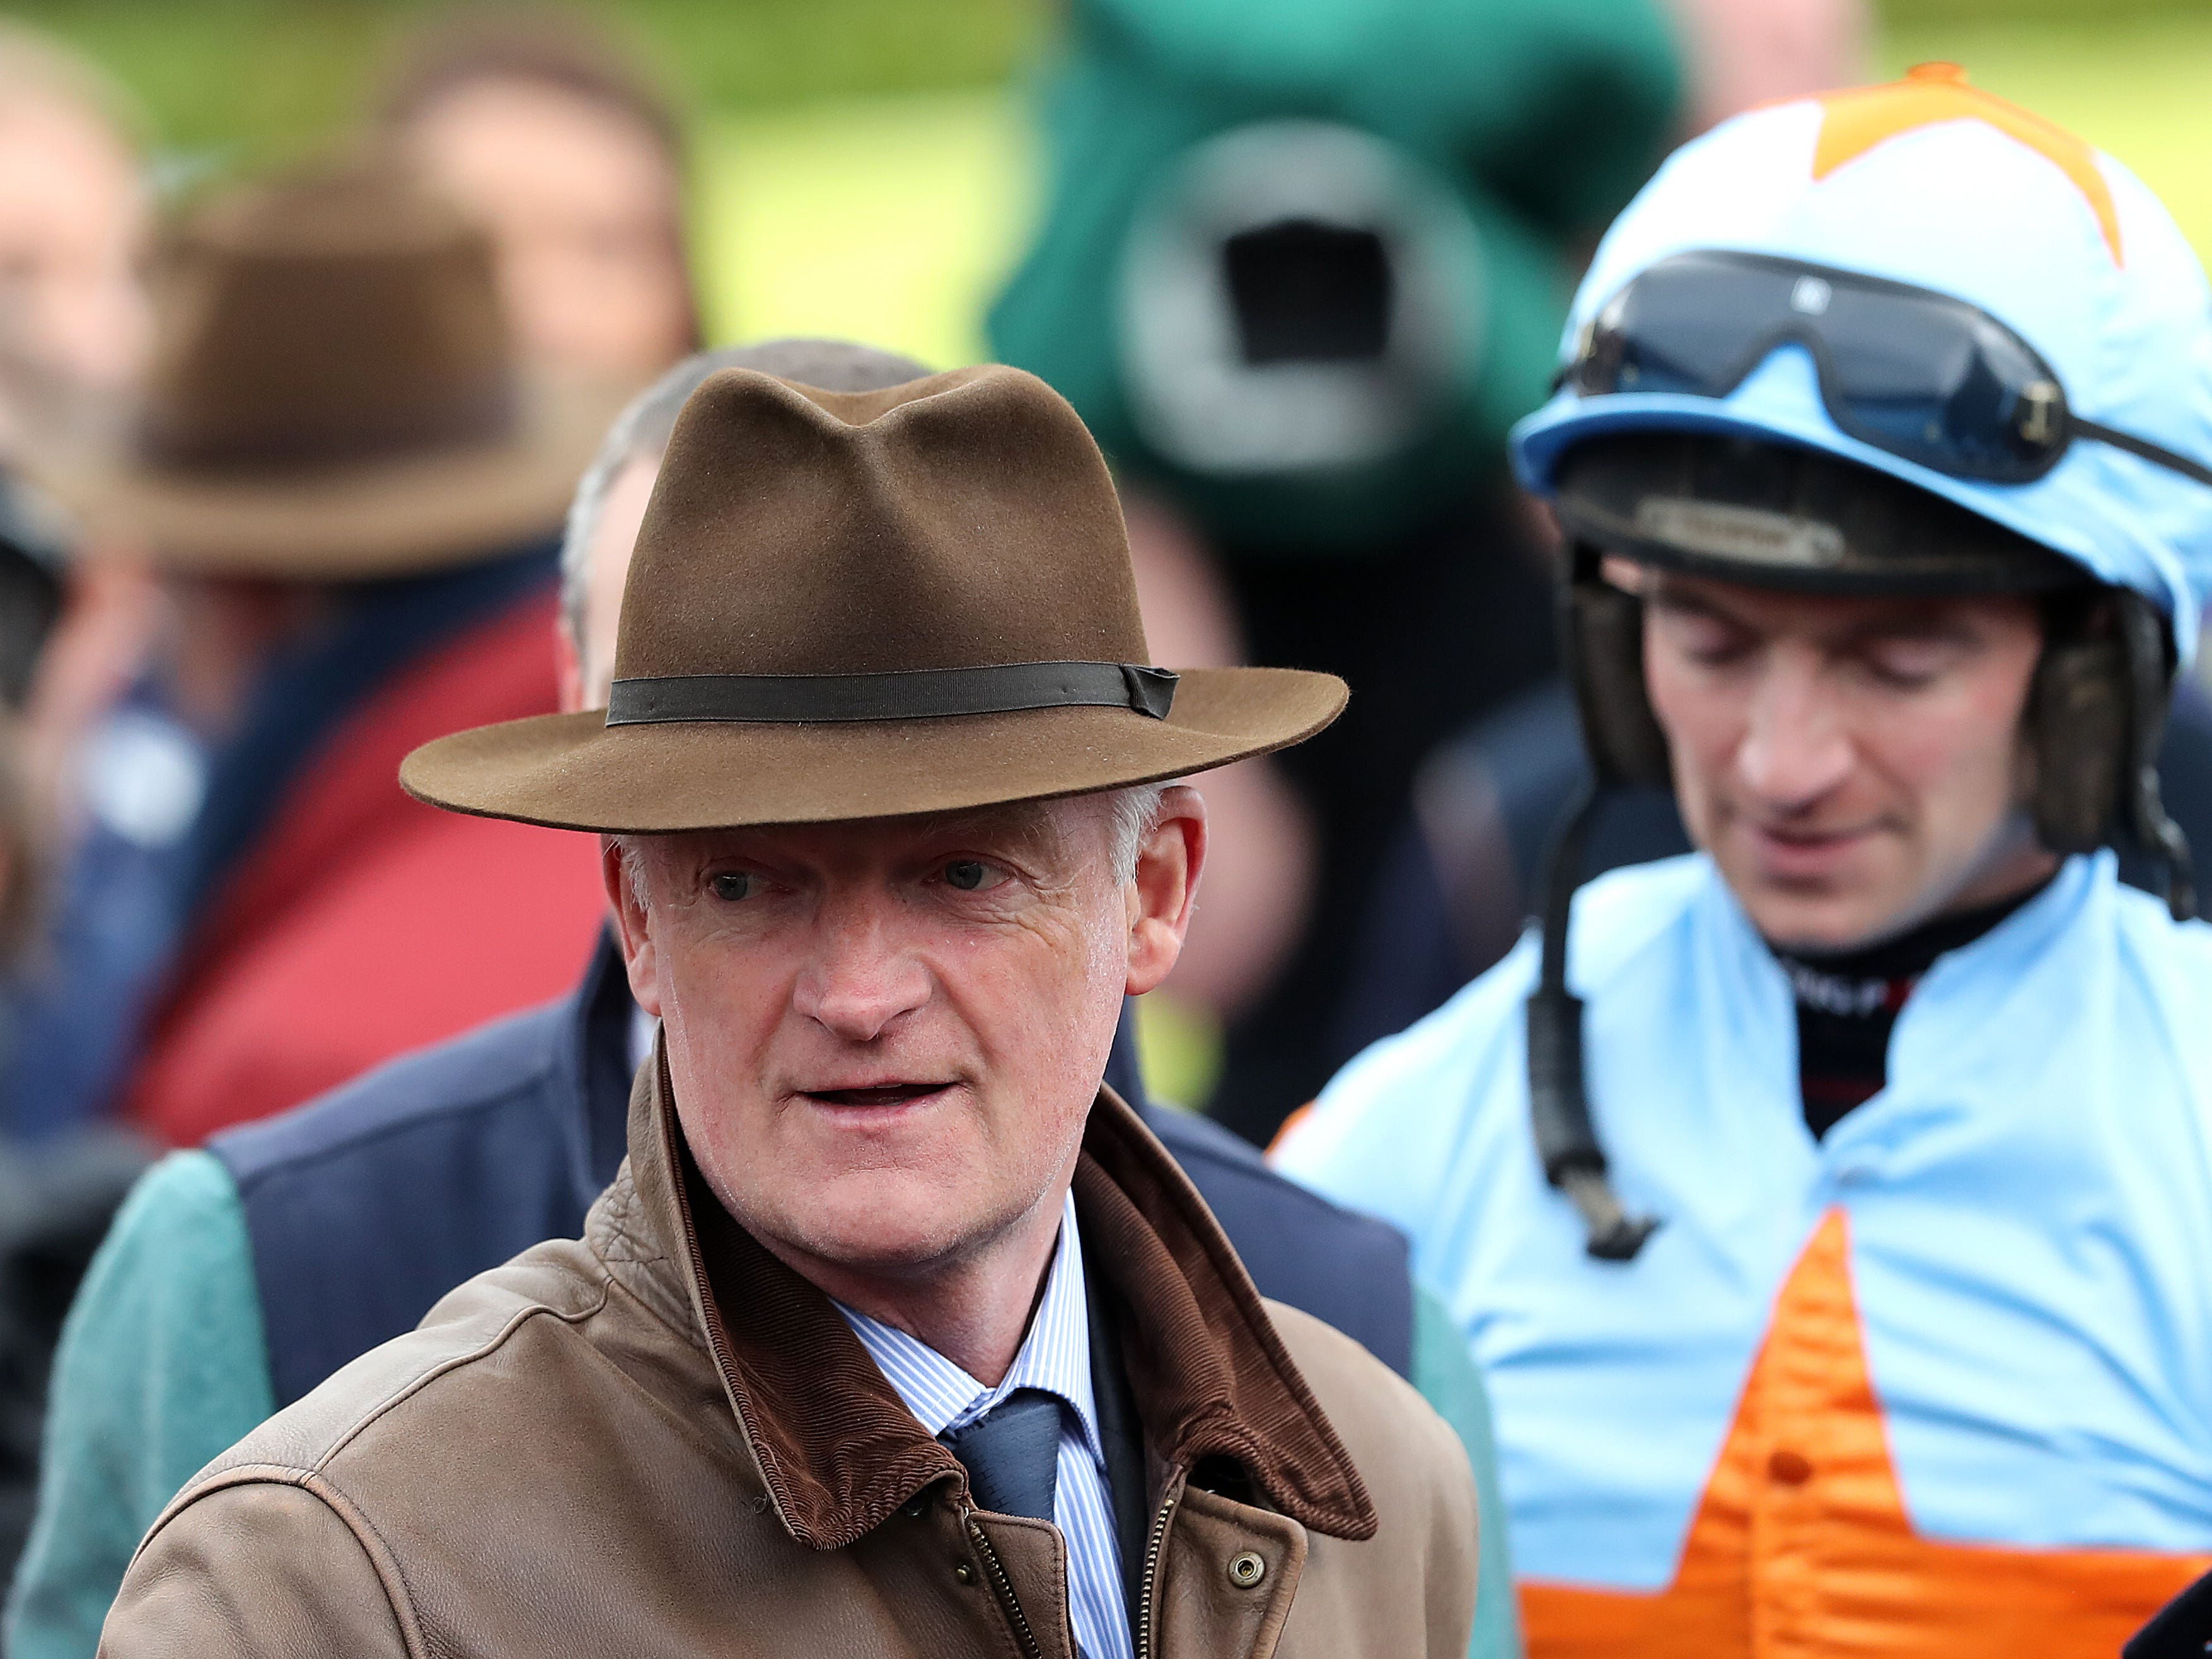 Willie Mullins made a fine start to a big week at Punchestown